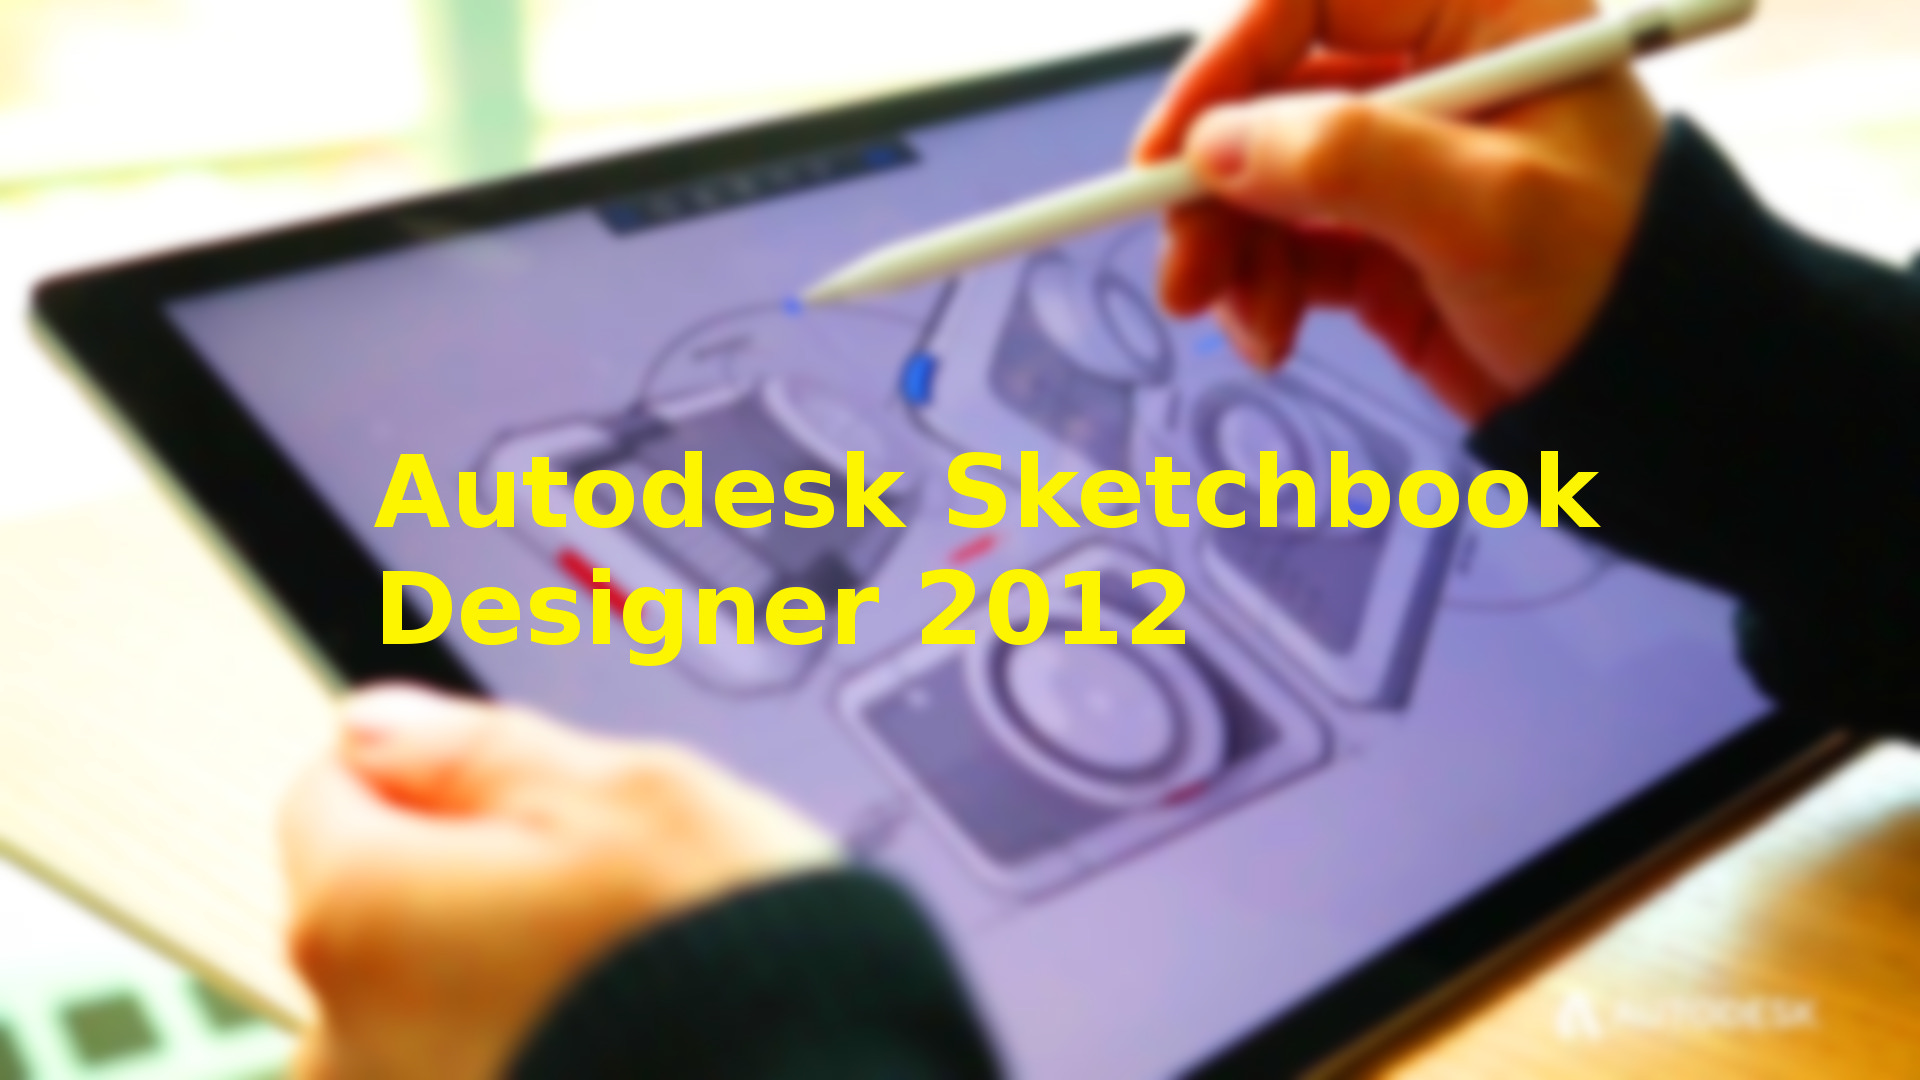 Free download of Autodesk Sketchbook Designer 2012